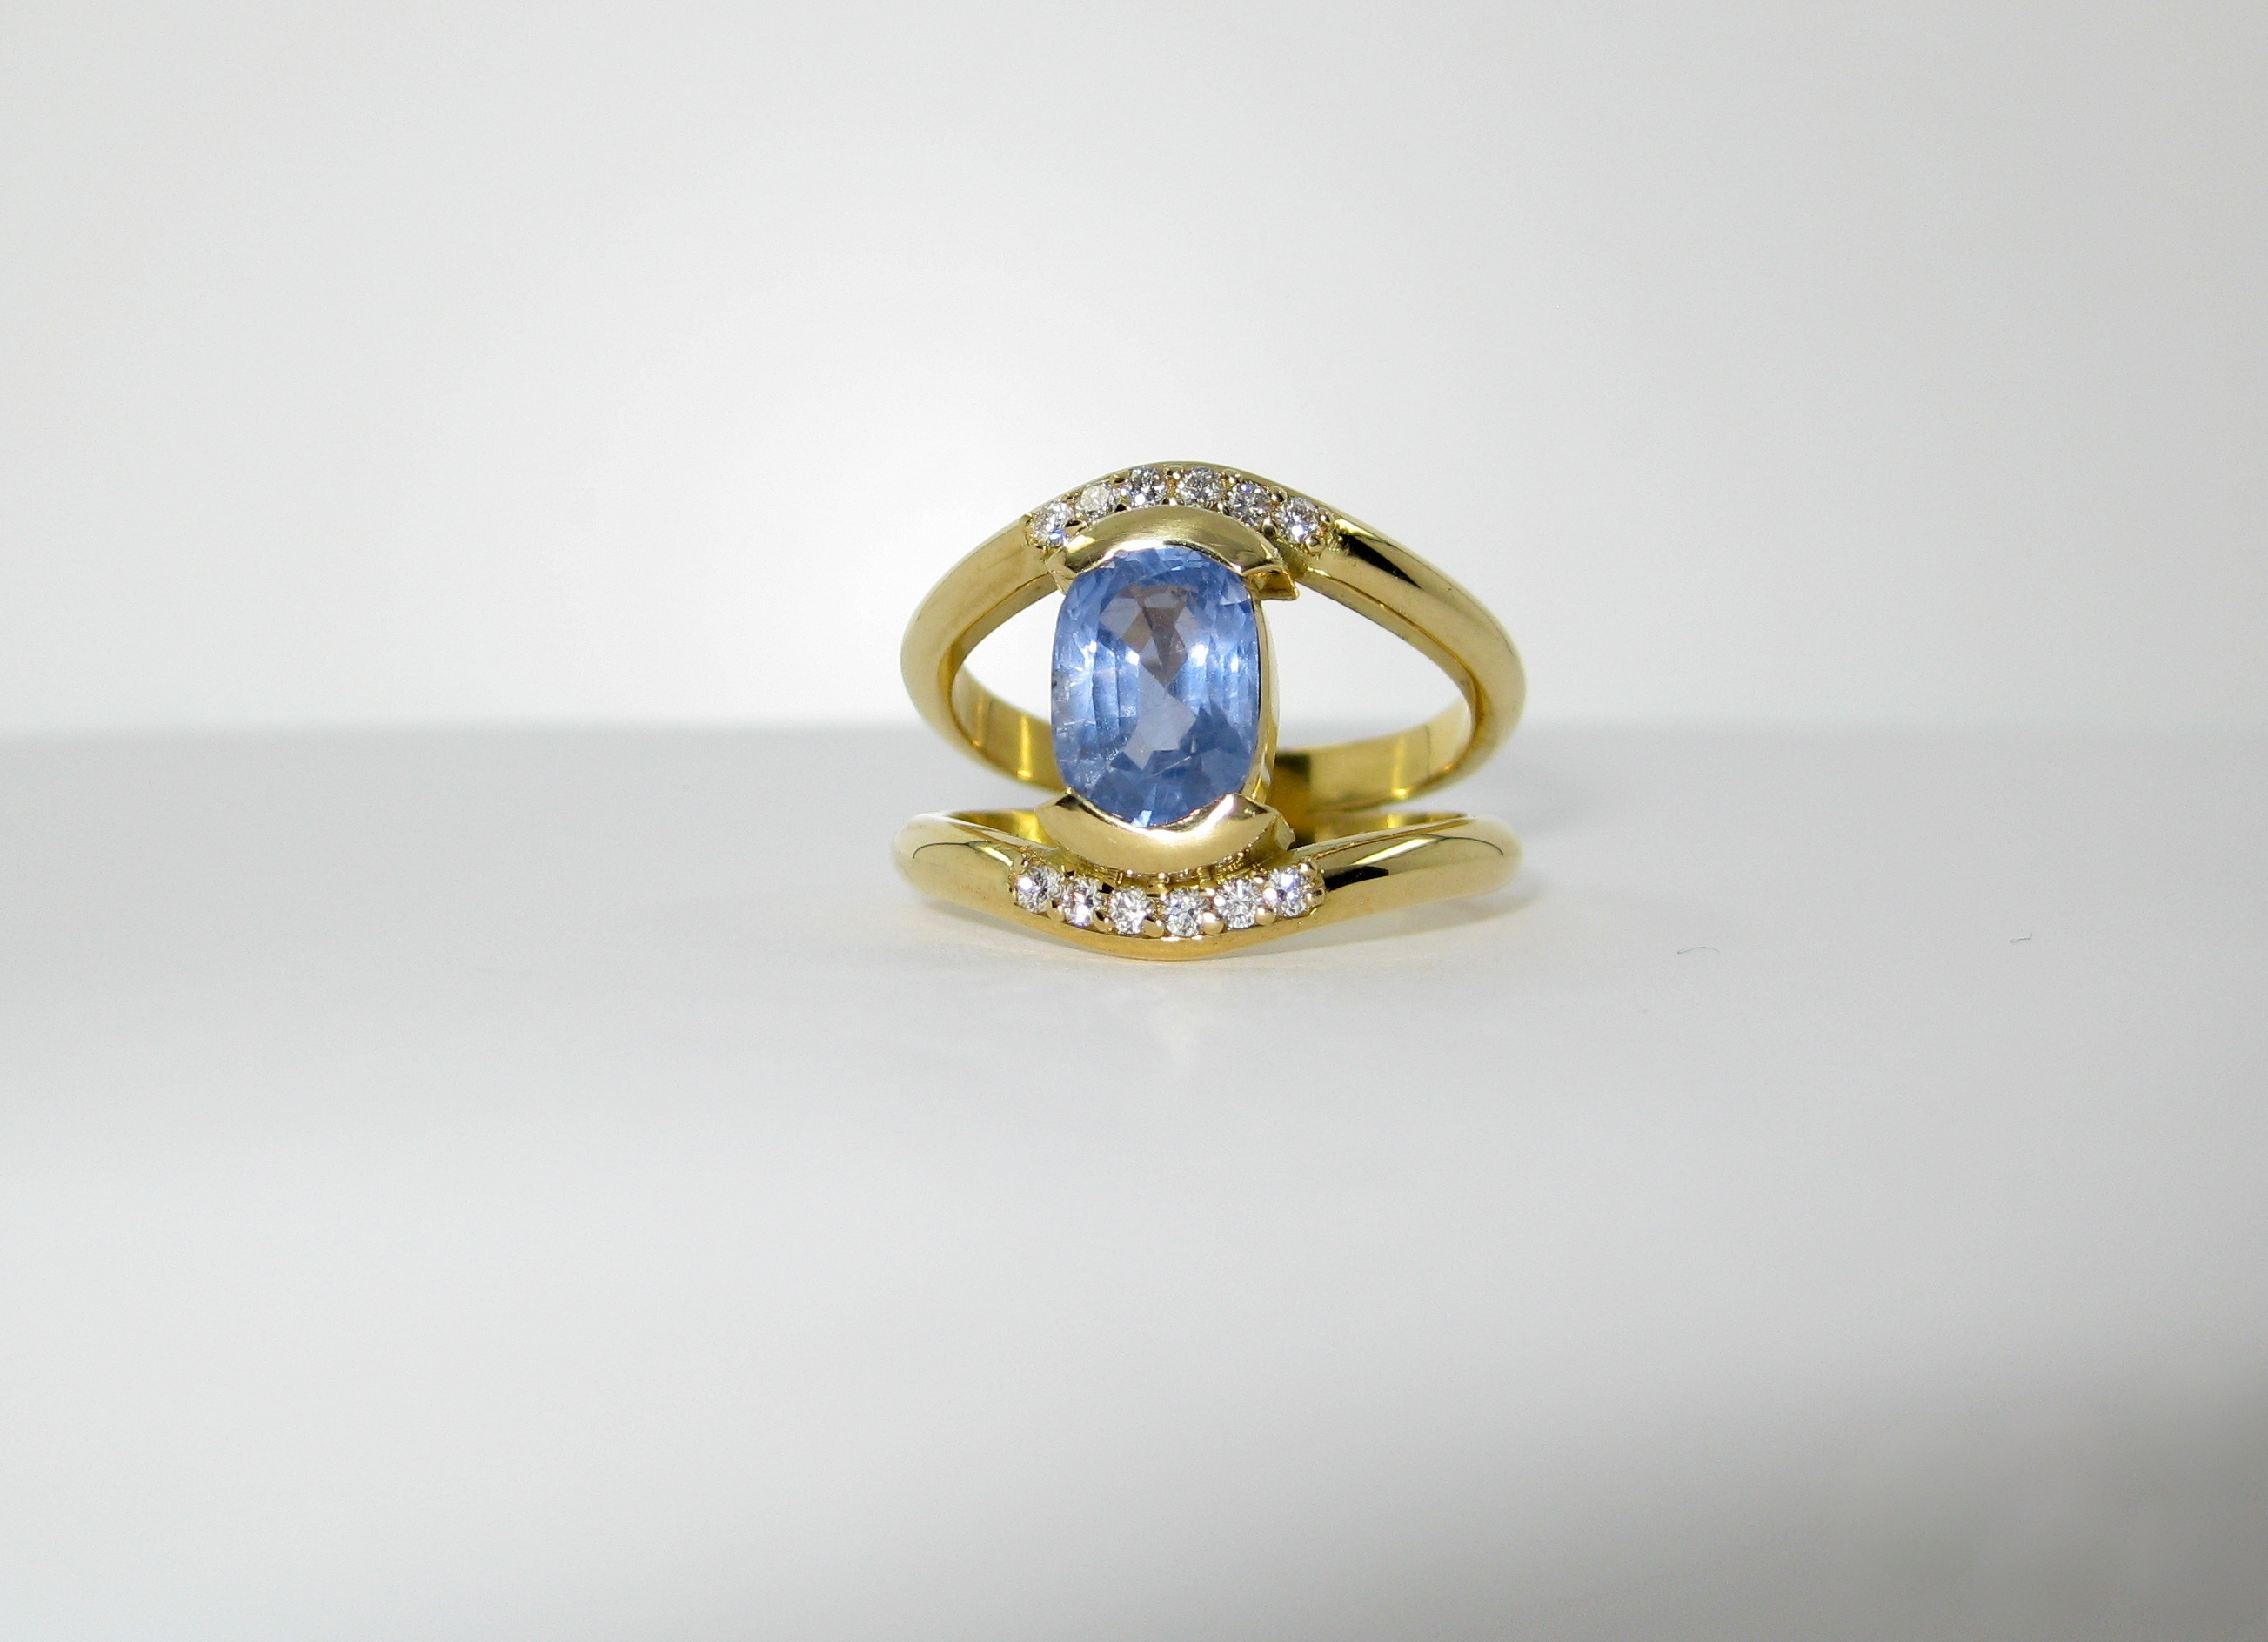 18ct yellow gold handmade Ceylon sapphire diamond ring Ipswich Suffolk